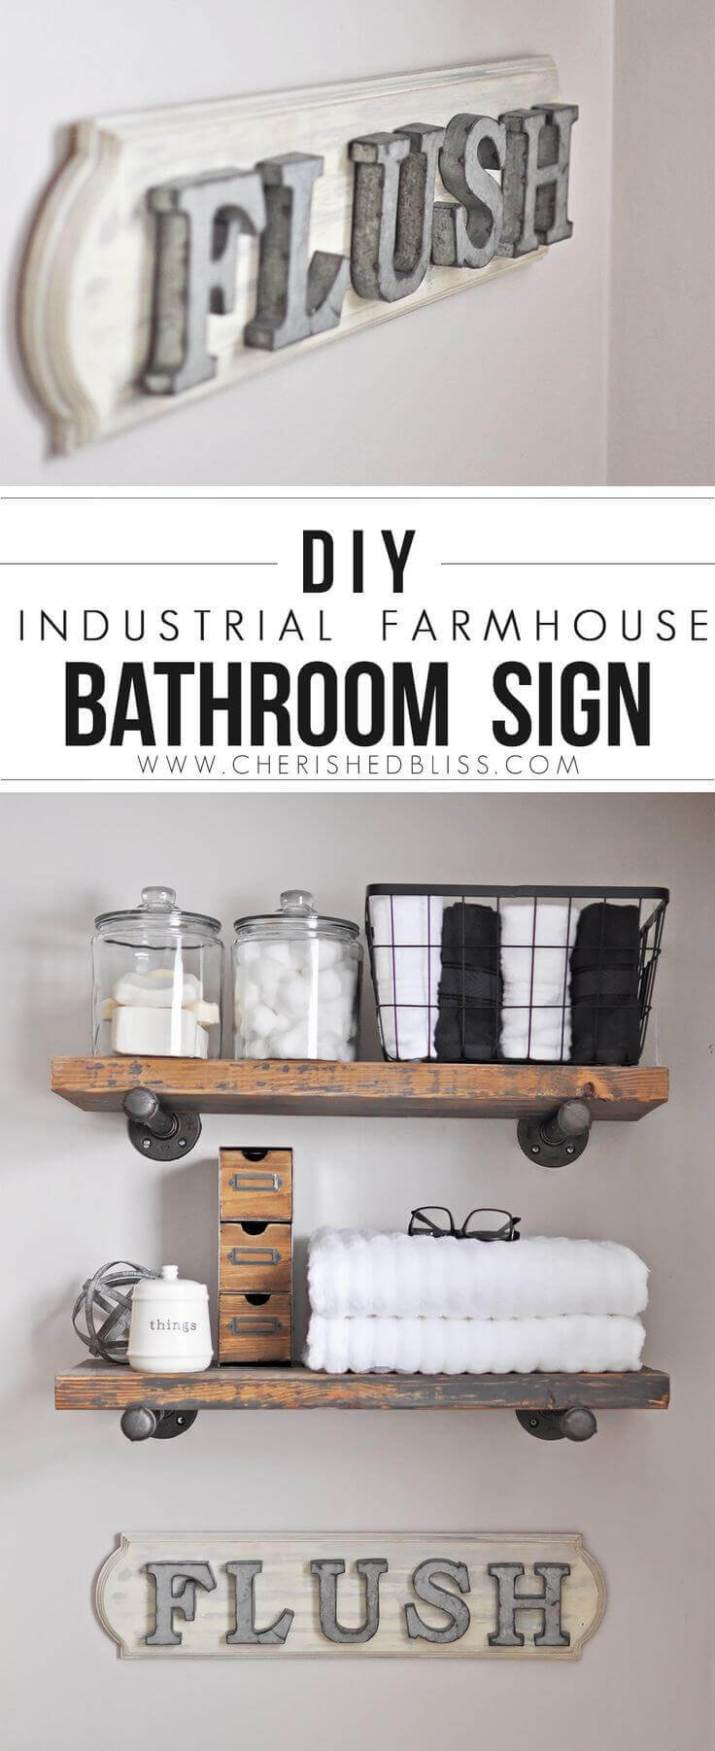 Beautiful farmhouse bathroom wall decor for you that are inexpensive and simple to do